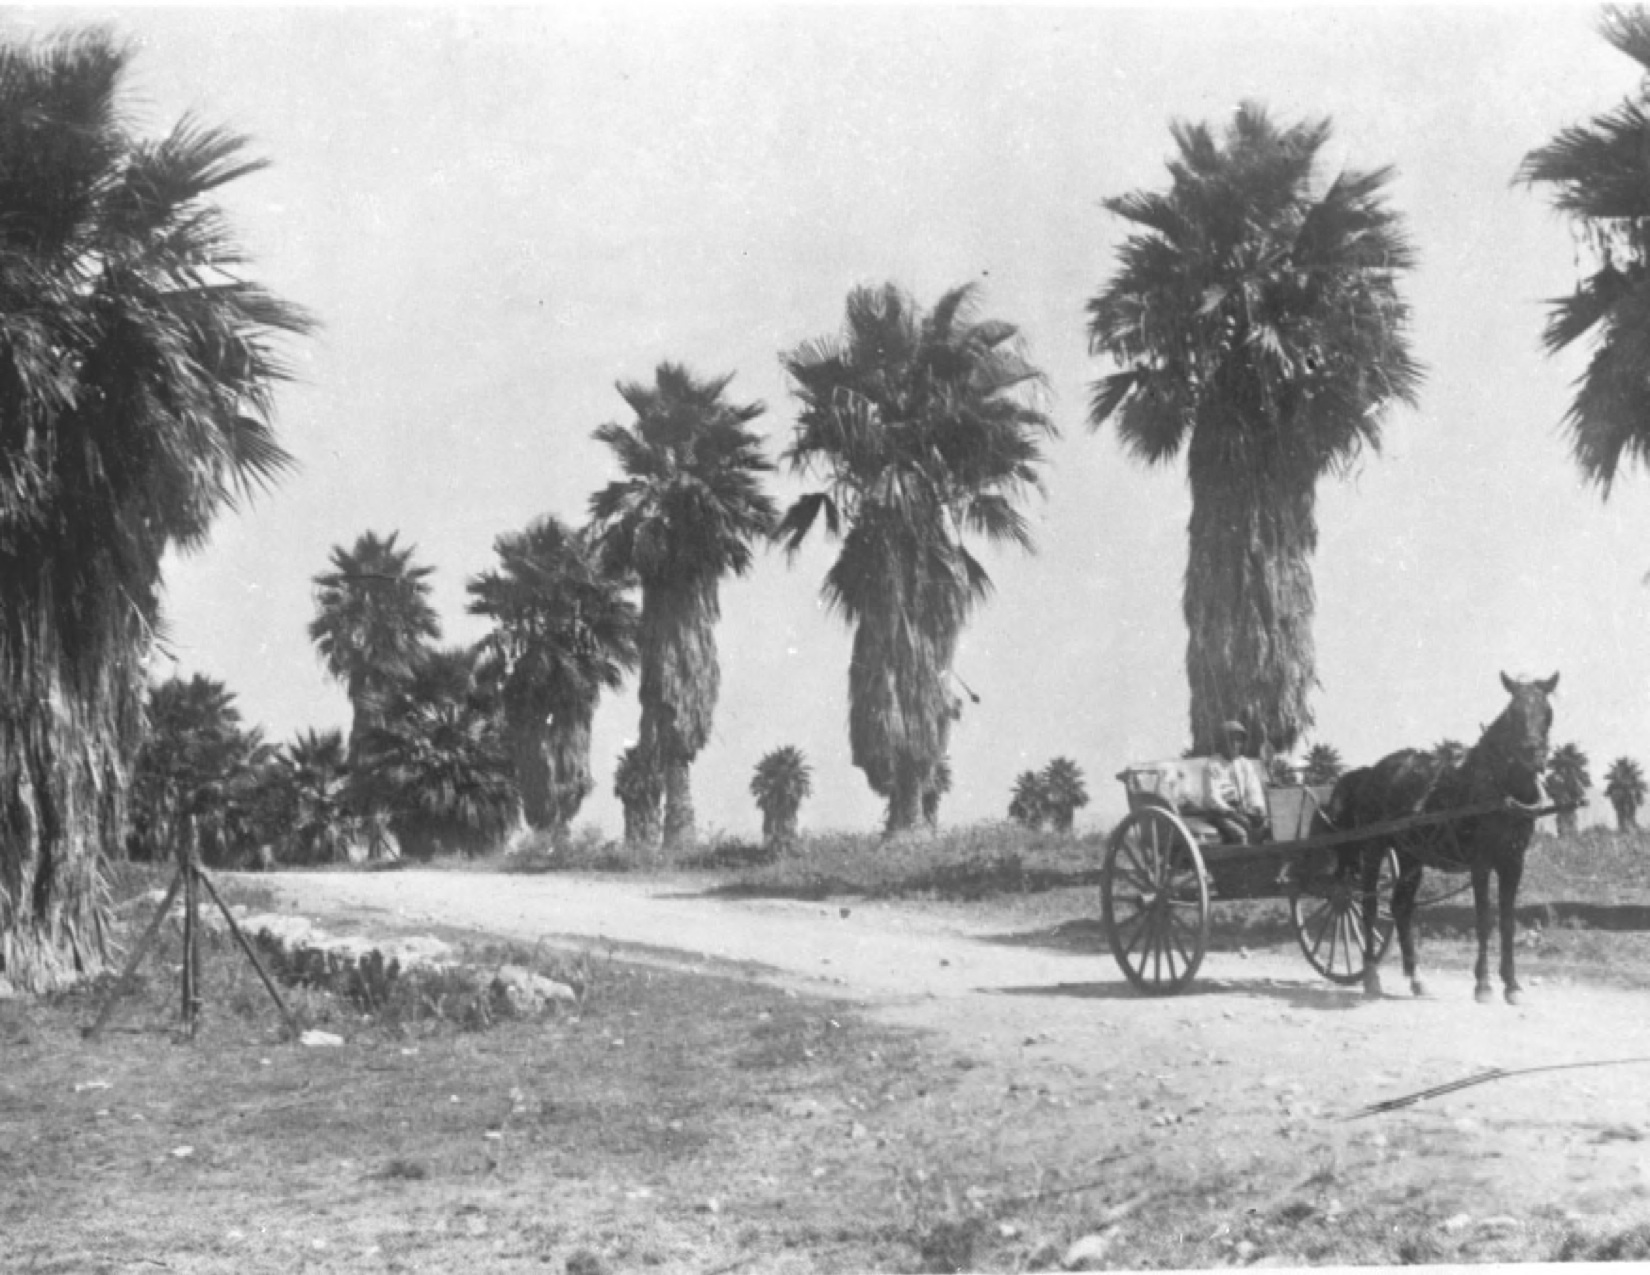 The palm trees on the way to the agricultural station in Atlit